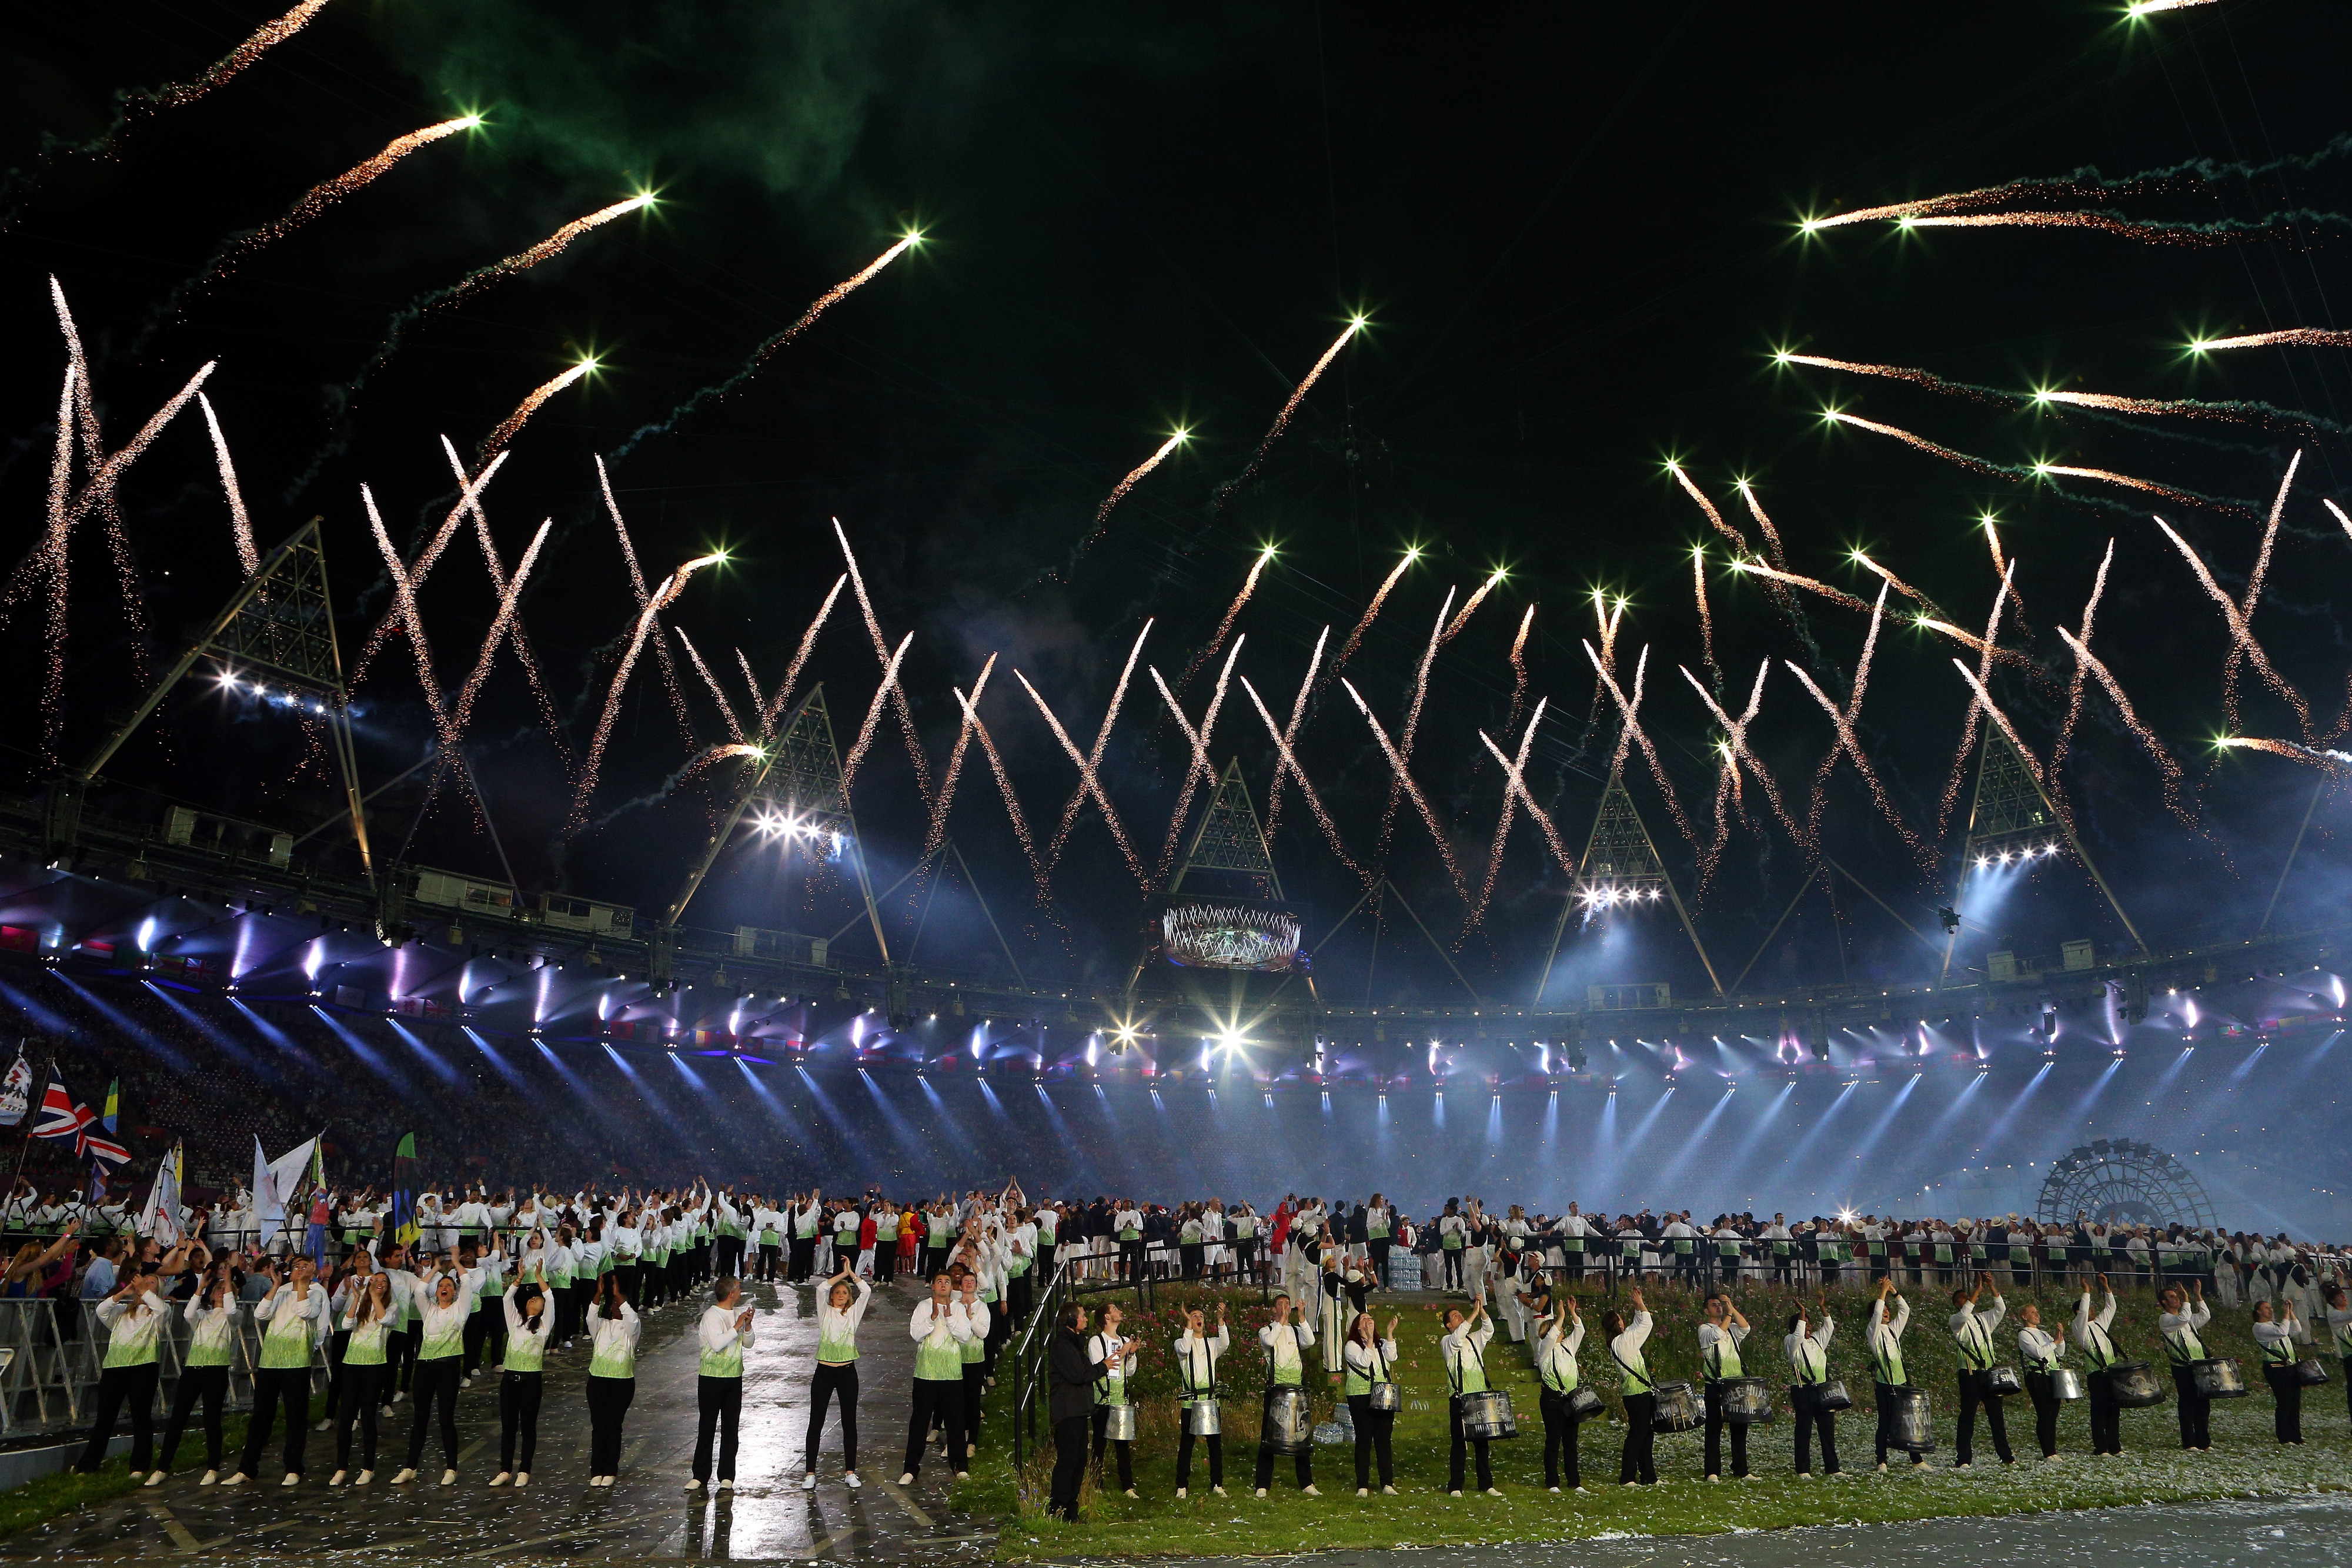 LONDON, ENGLAND - JULY 27:  General view as fireworks illuminate the sky during the Opening Ceremony of the London 2012 Olympic Games at the Olympic Stadium on July 27, 2012 in London, England.  (Photo by Cameron Spencer/Getty Images)